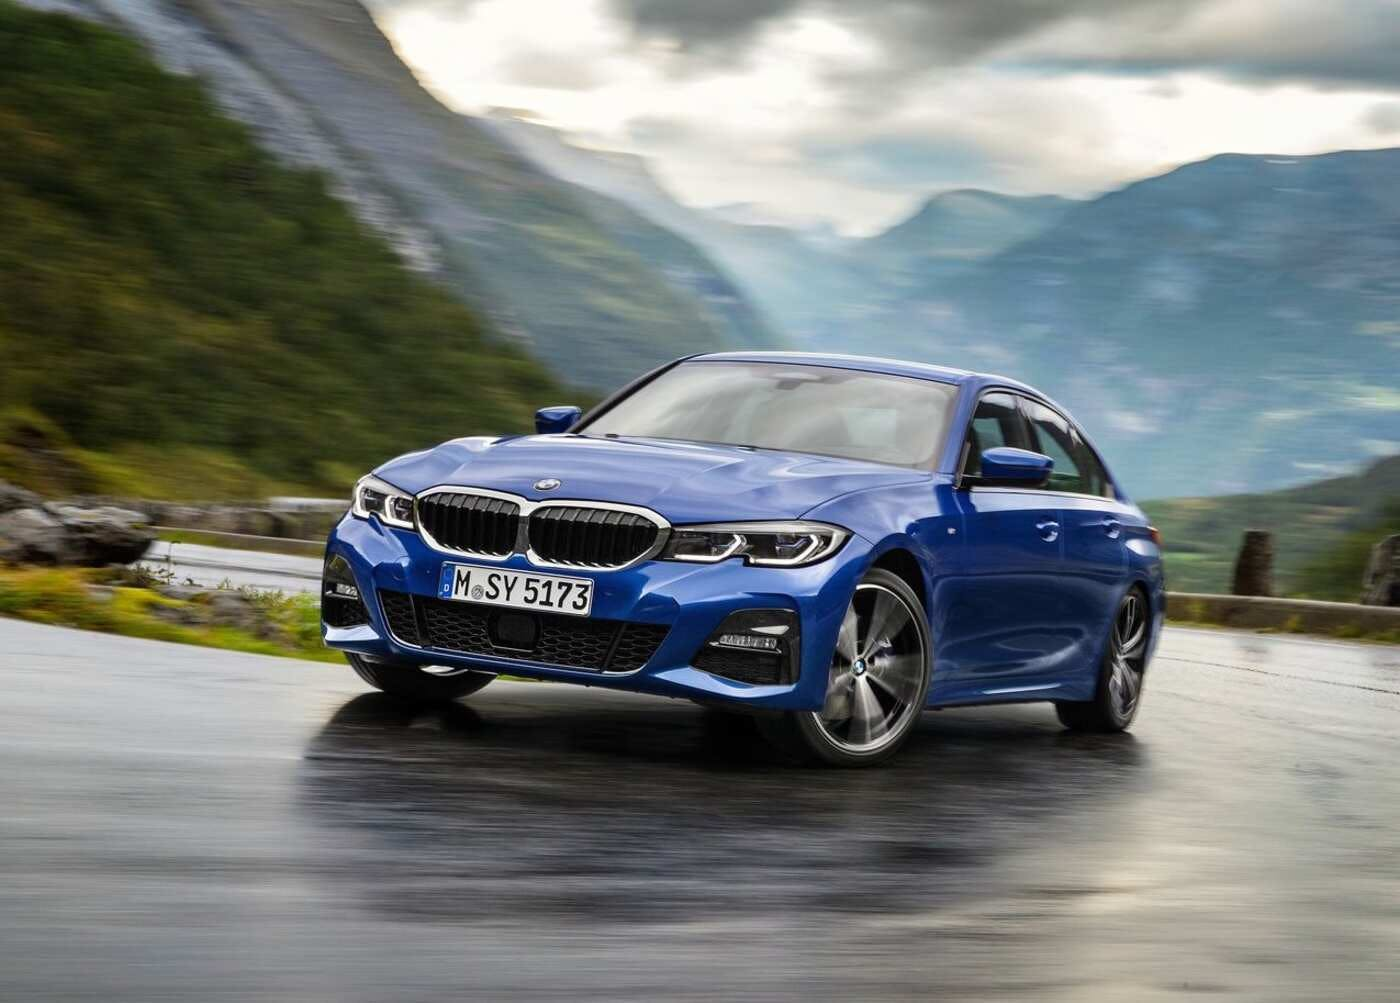 2013 Bmw 328I Windshield Replacement Cost 2020 bmw 3 series comparisons, reviews & pictures | truecar